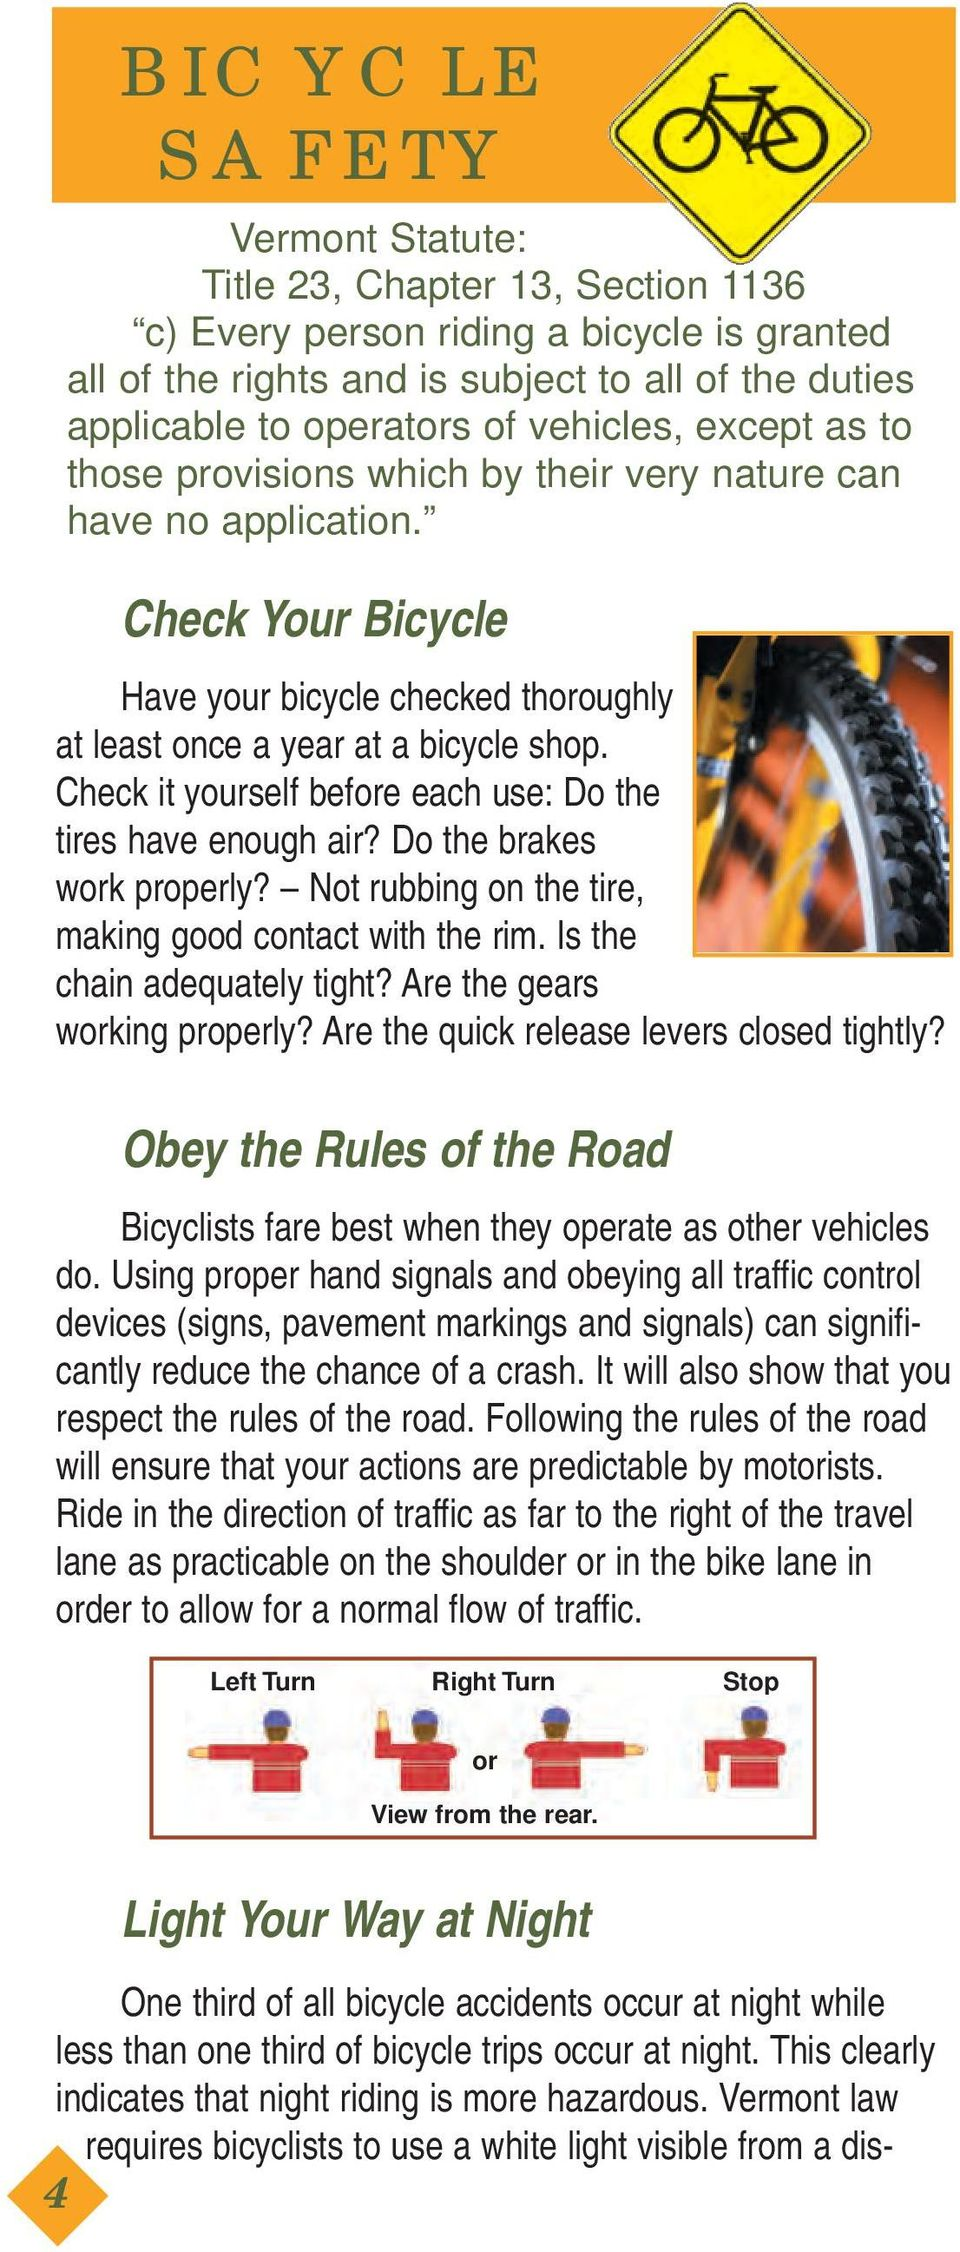 Check it yourself before each use: Do the tires have enough air? Do the brakes work properly? Not rubbing on the tire, making good contact with the rim. Is the chain adequately tight?